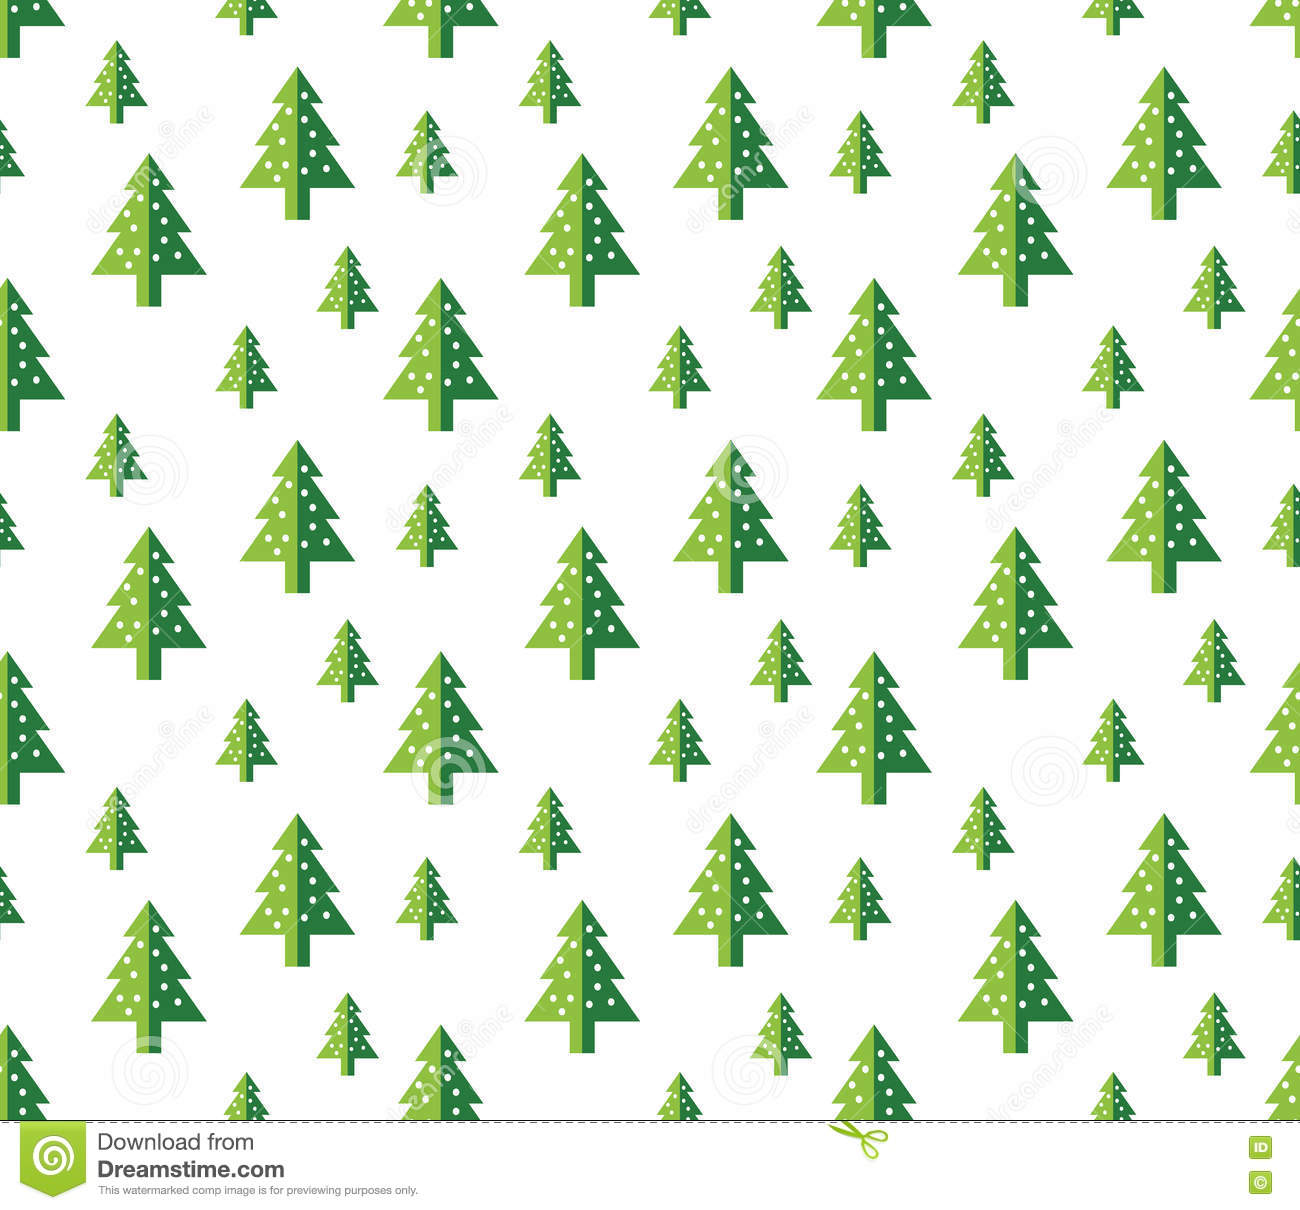 Christmas Trees Seamless Pattern For New Year Greeting Card Wallpaper Background Isolated Decoration